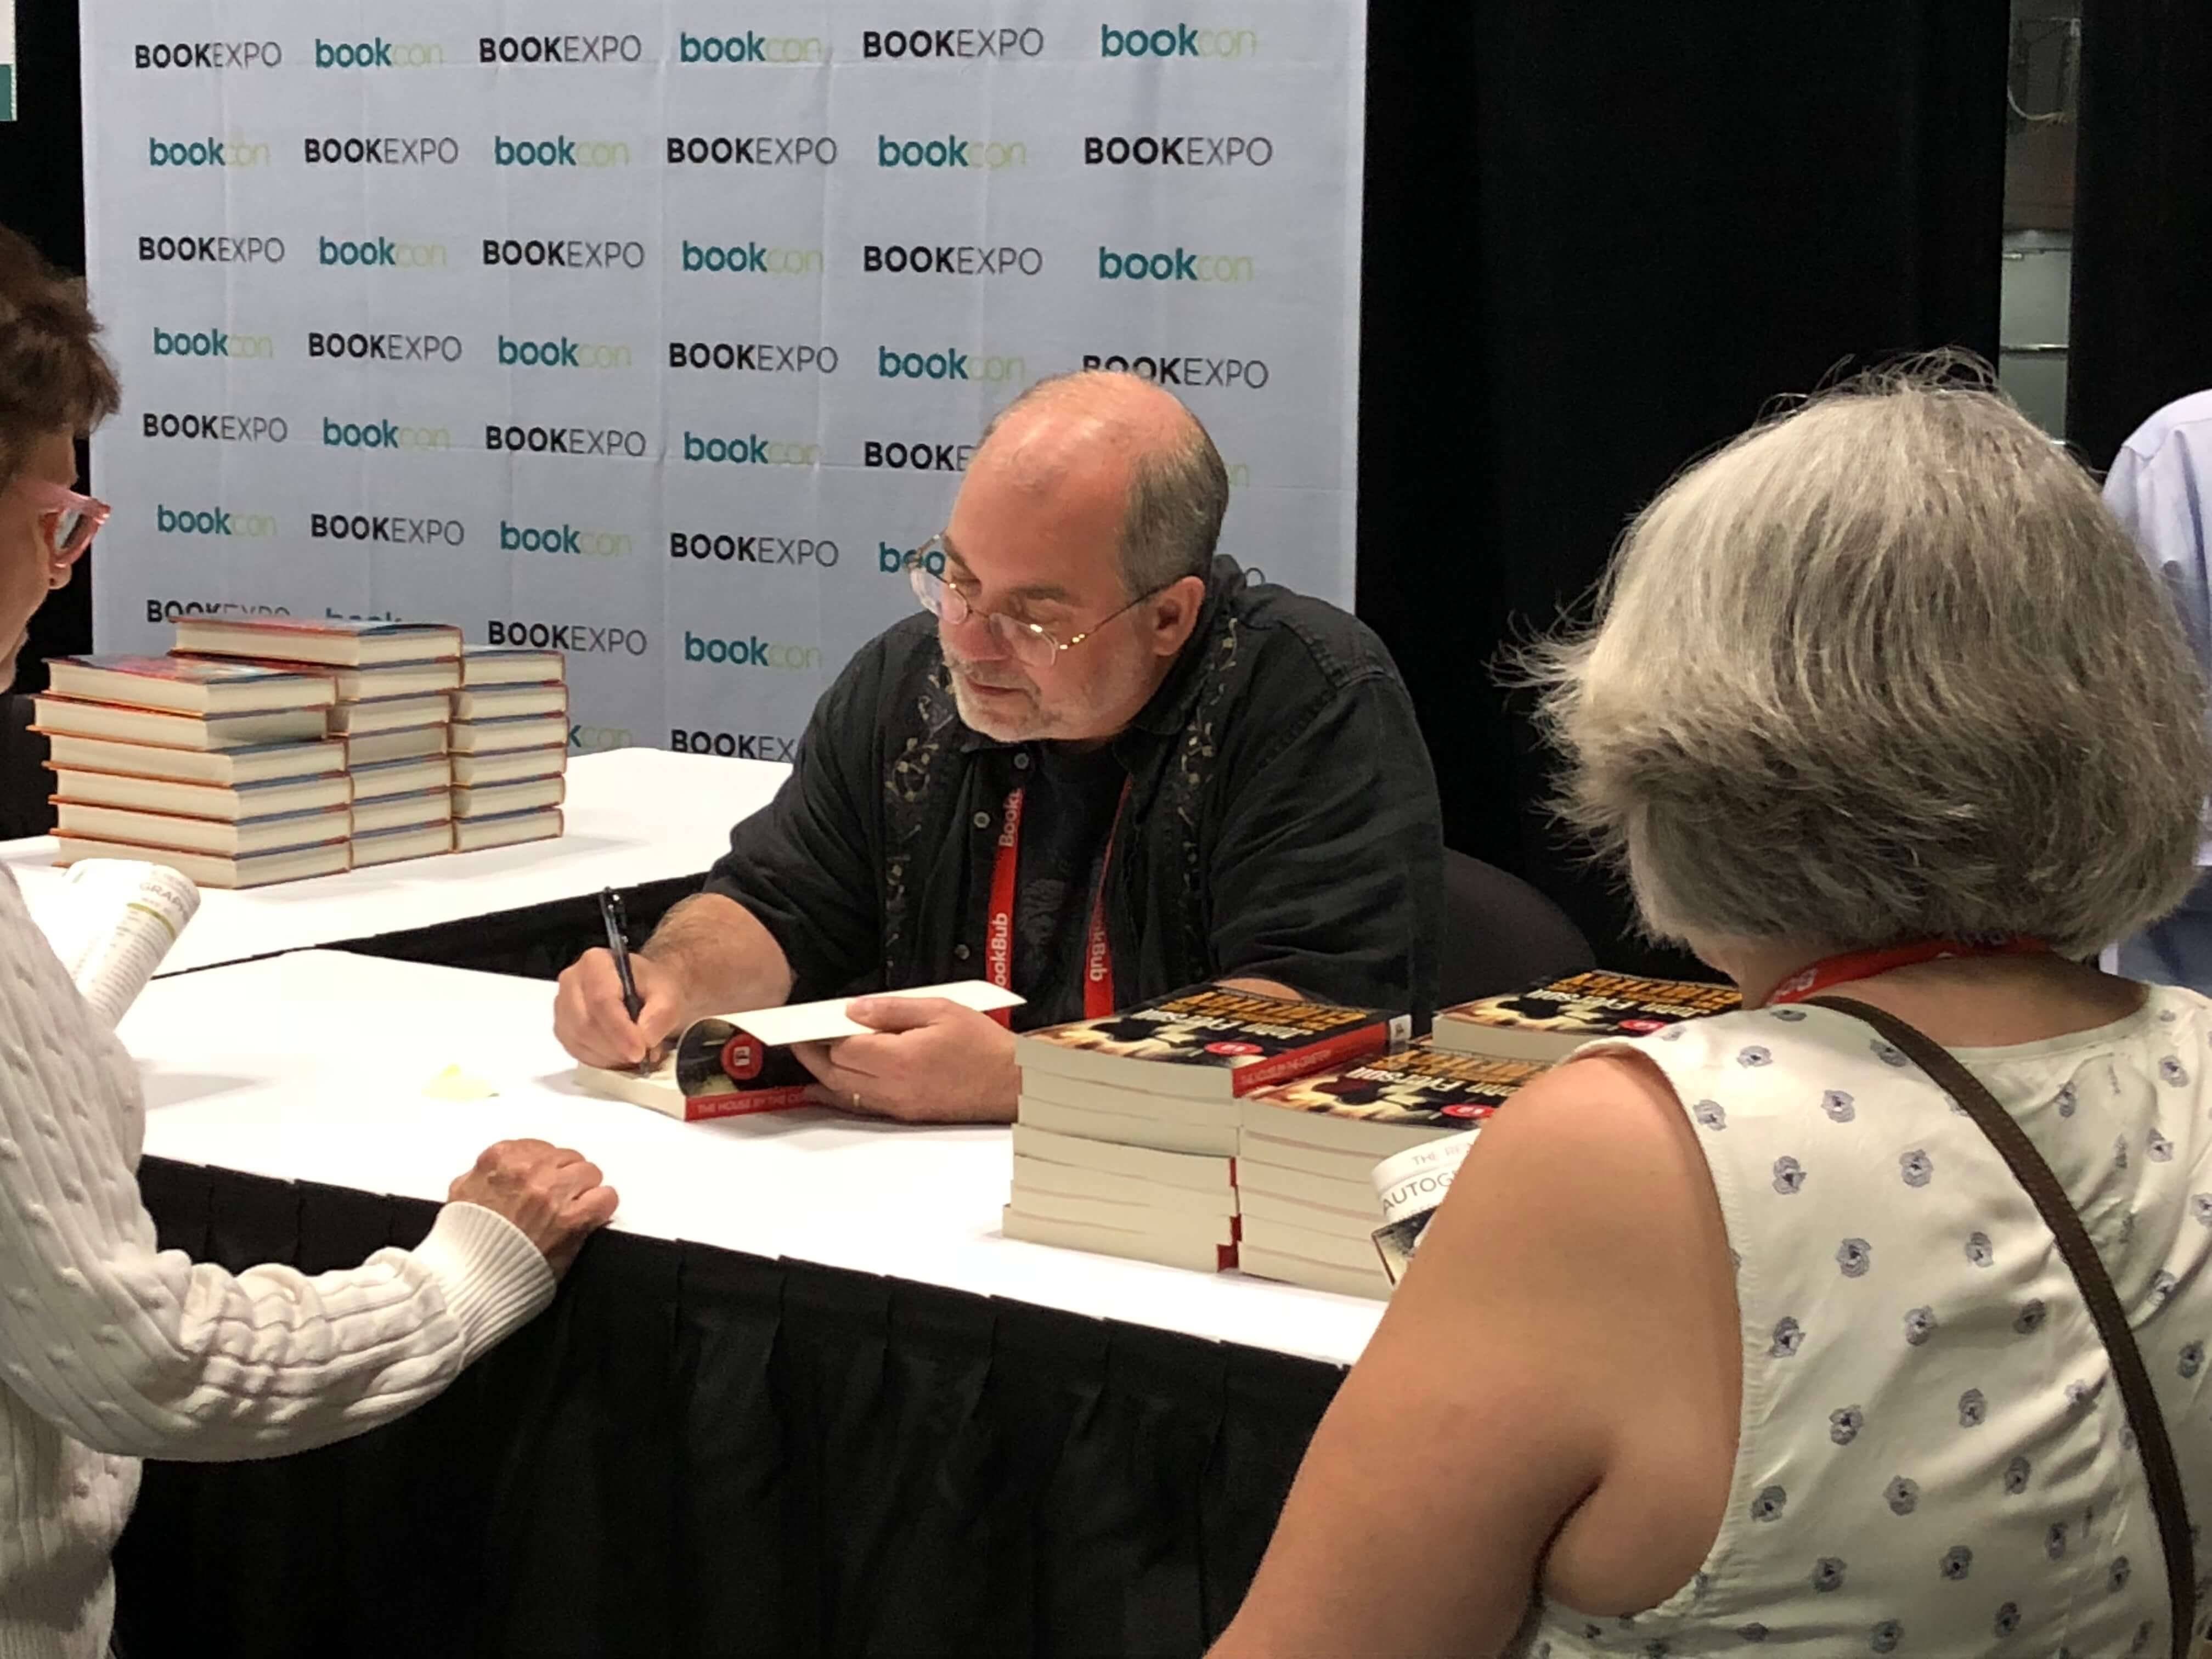 John Everson author signing at Flame Tree BookExpo18